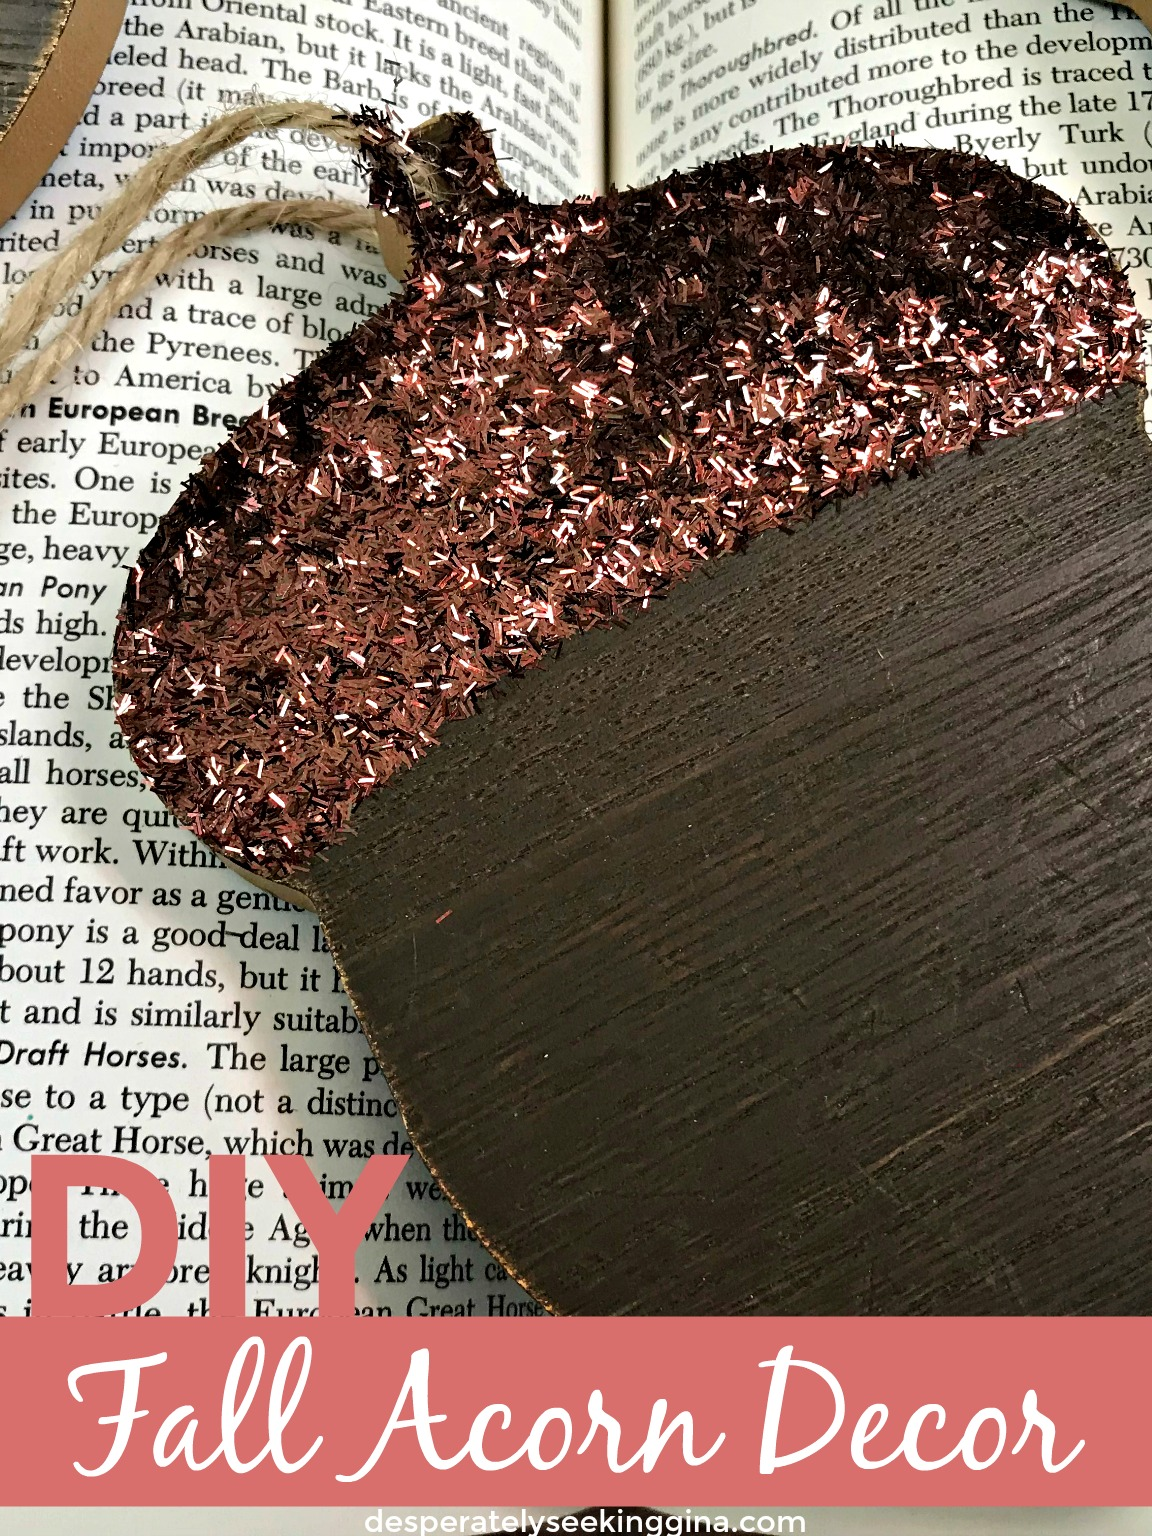 Wooden acorn ornament decorated with brown sparkly glitter via desperately seeking gina